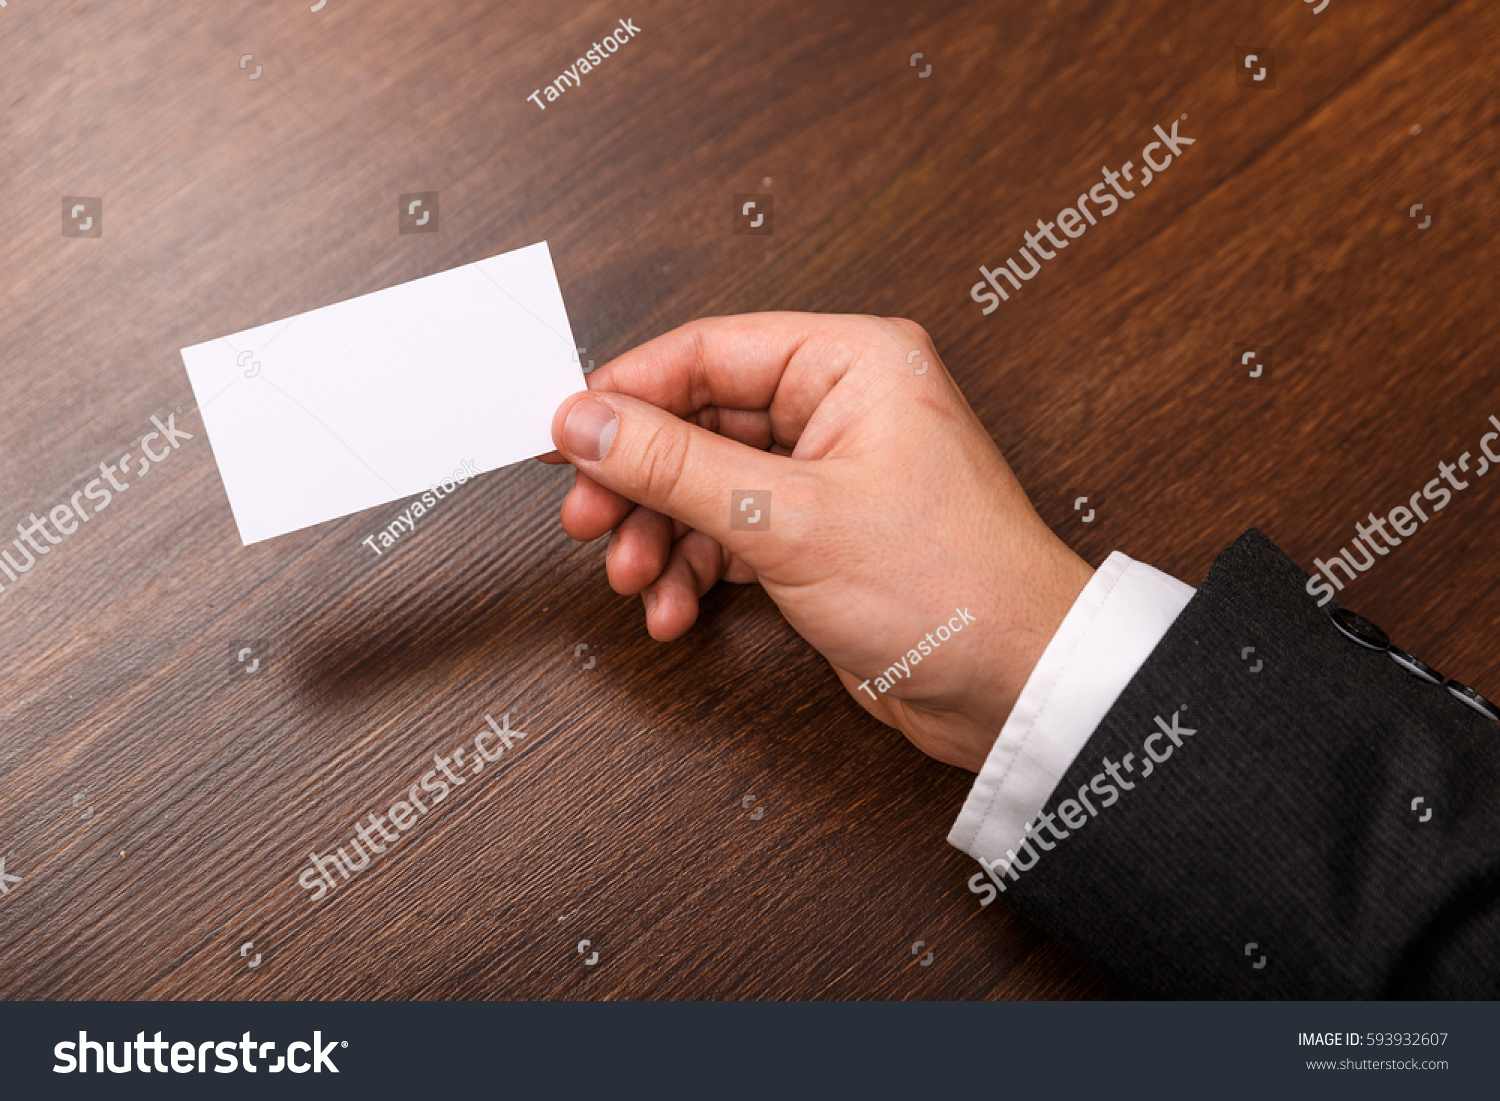 Hand Hold Blank Business Card Design Stock Photo (Royalty Free ...